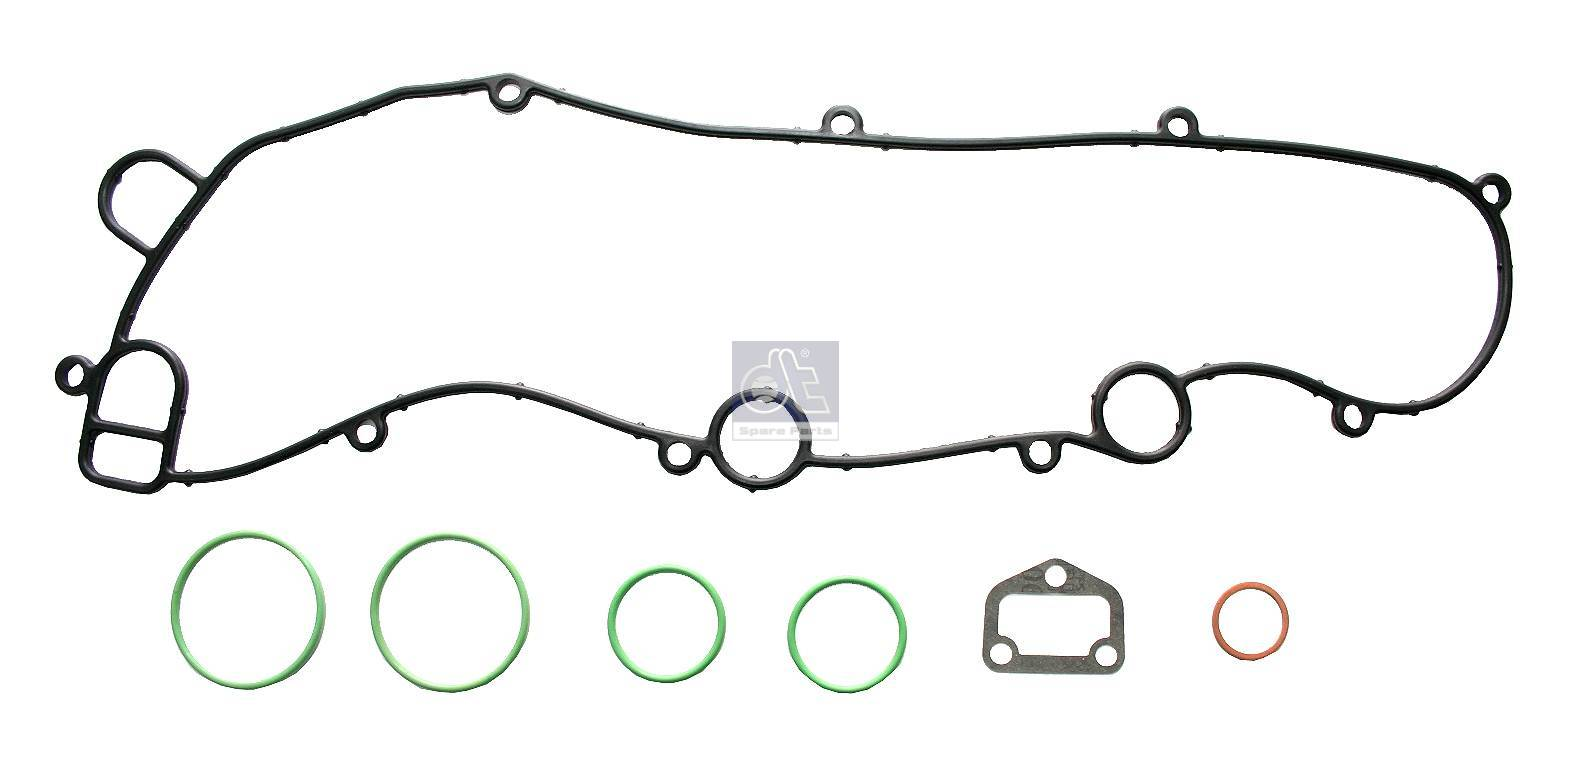 Dt 1 Gasket Kit Oil Cooler S Suitable For Scania